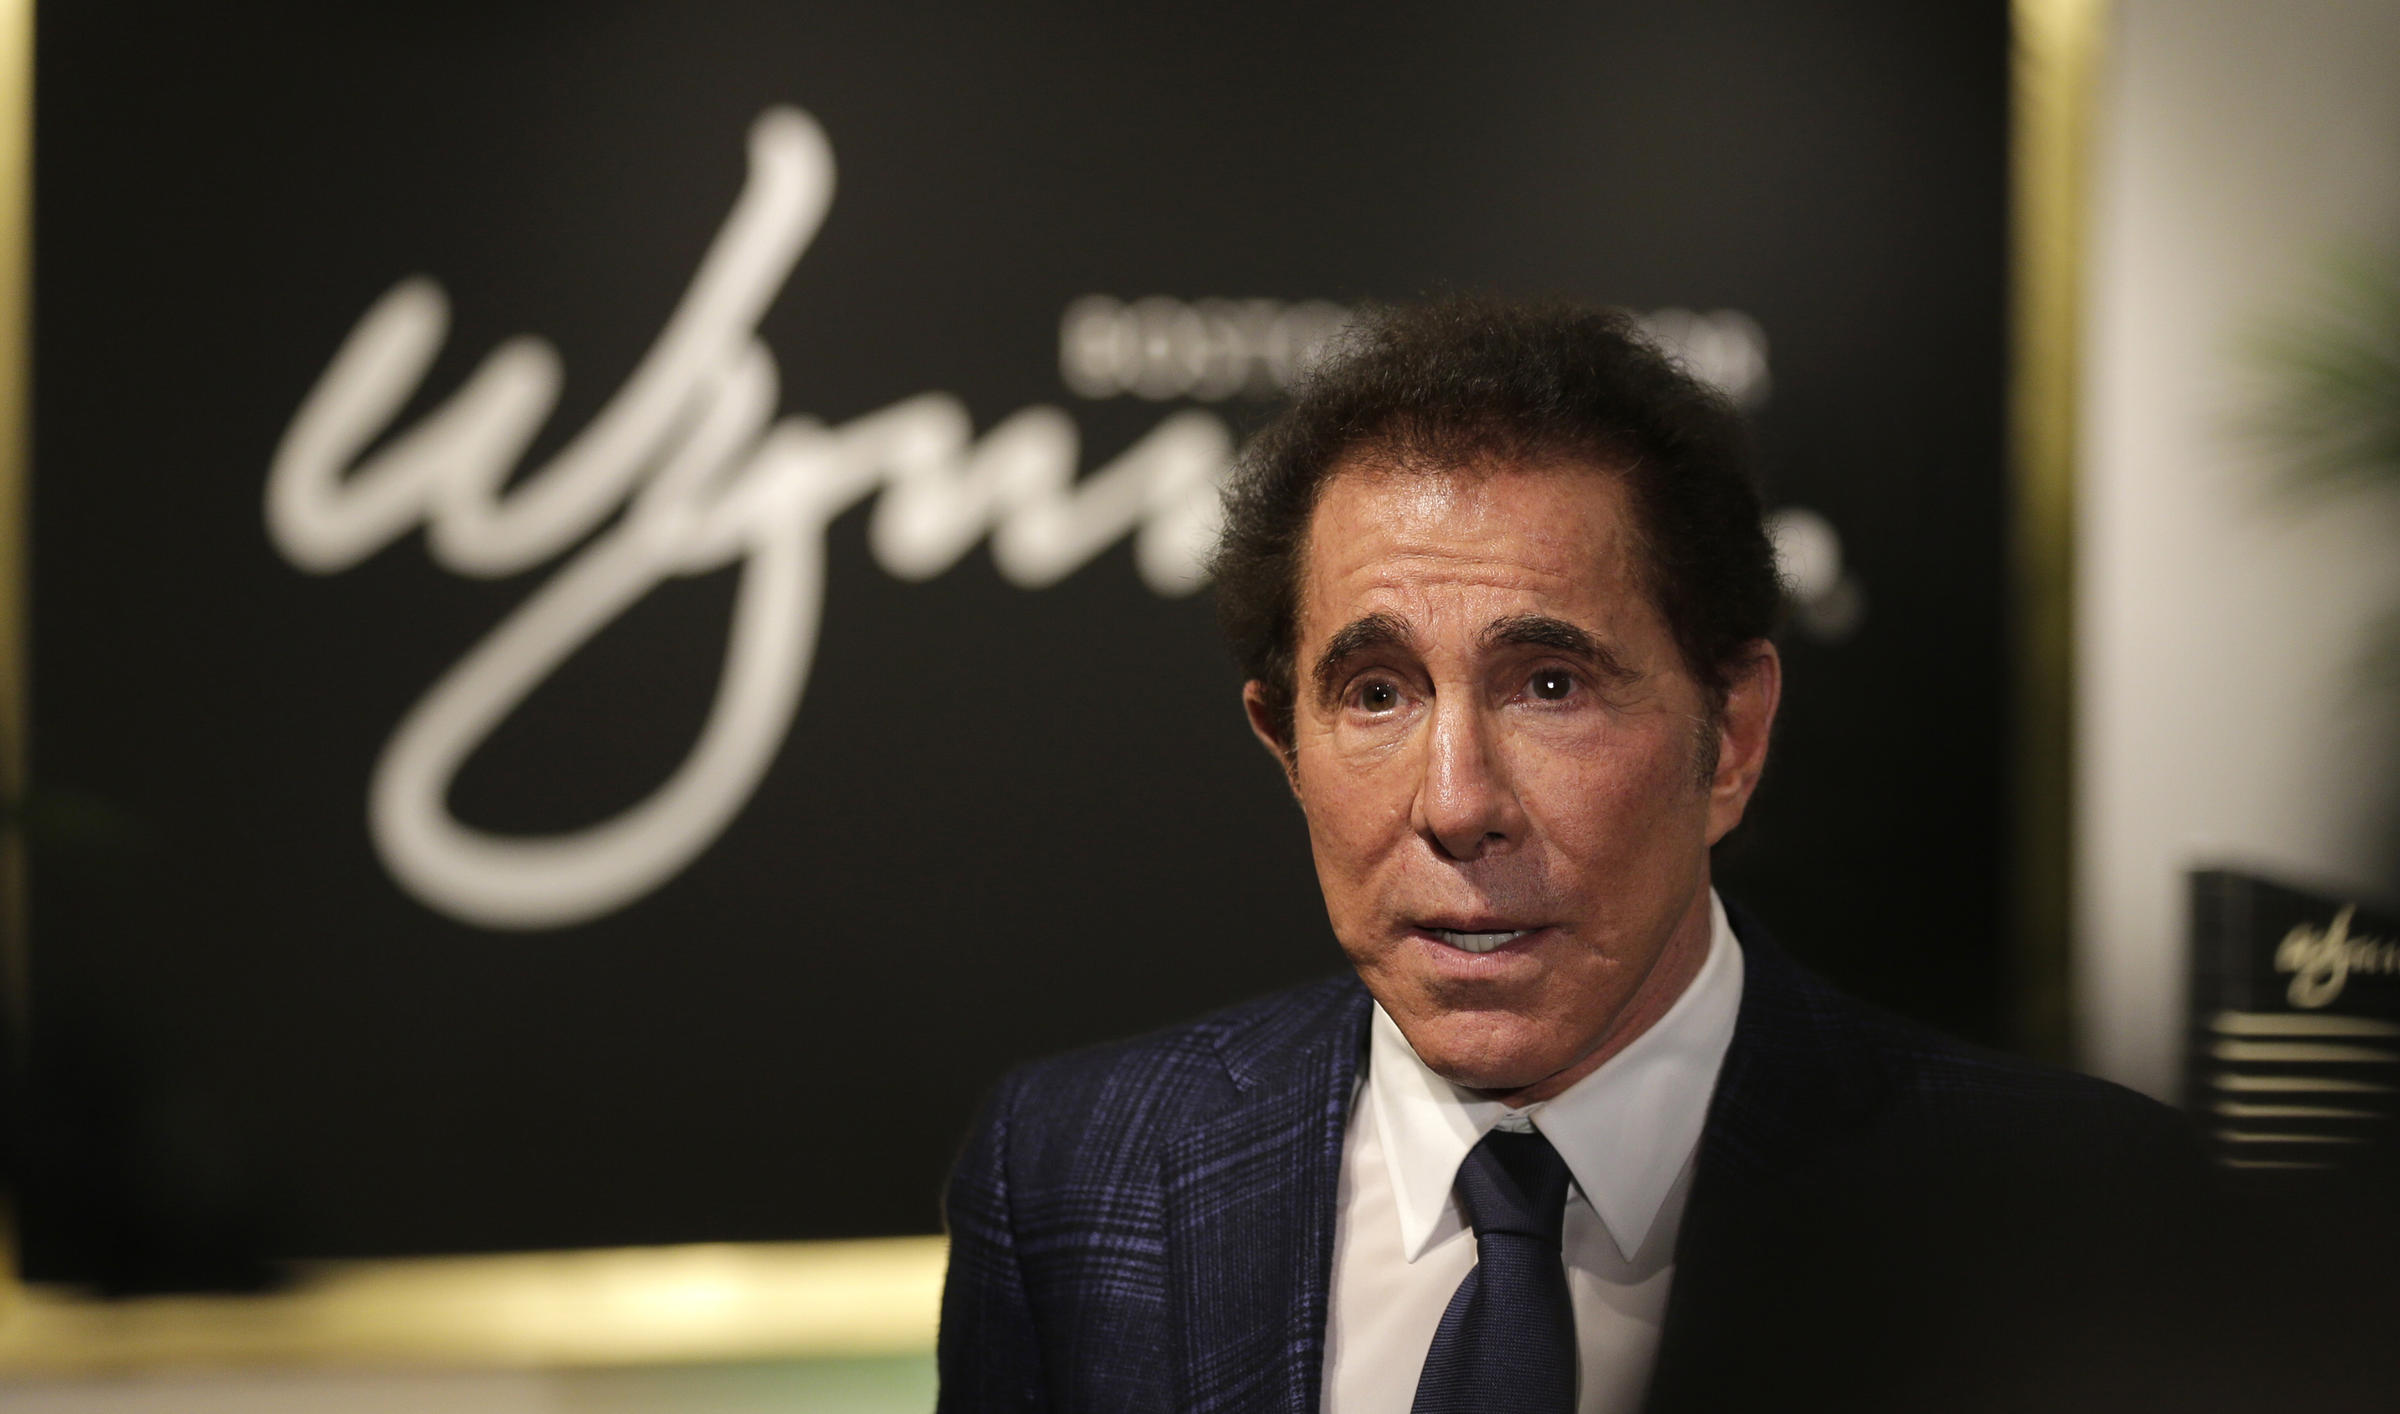 Casino mogul Steve Wynn during a news conference in Medford Mass. Tuesday